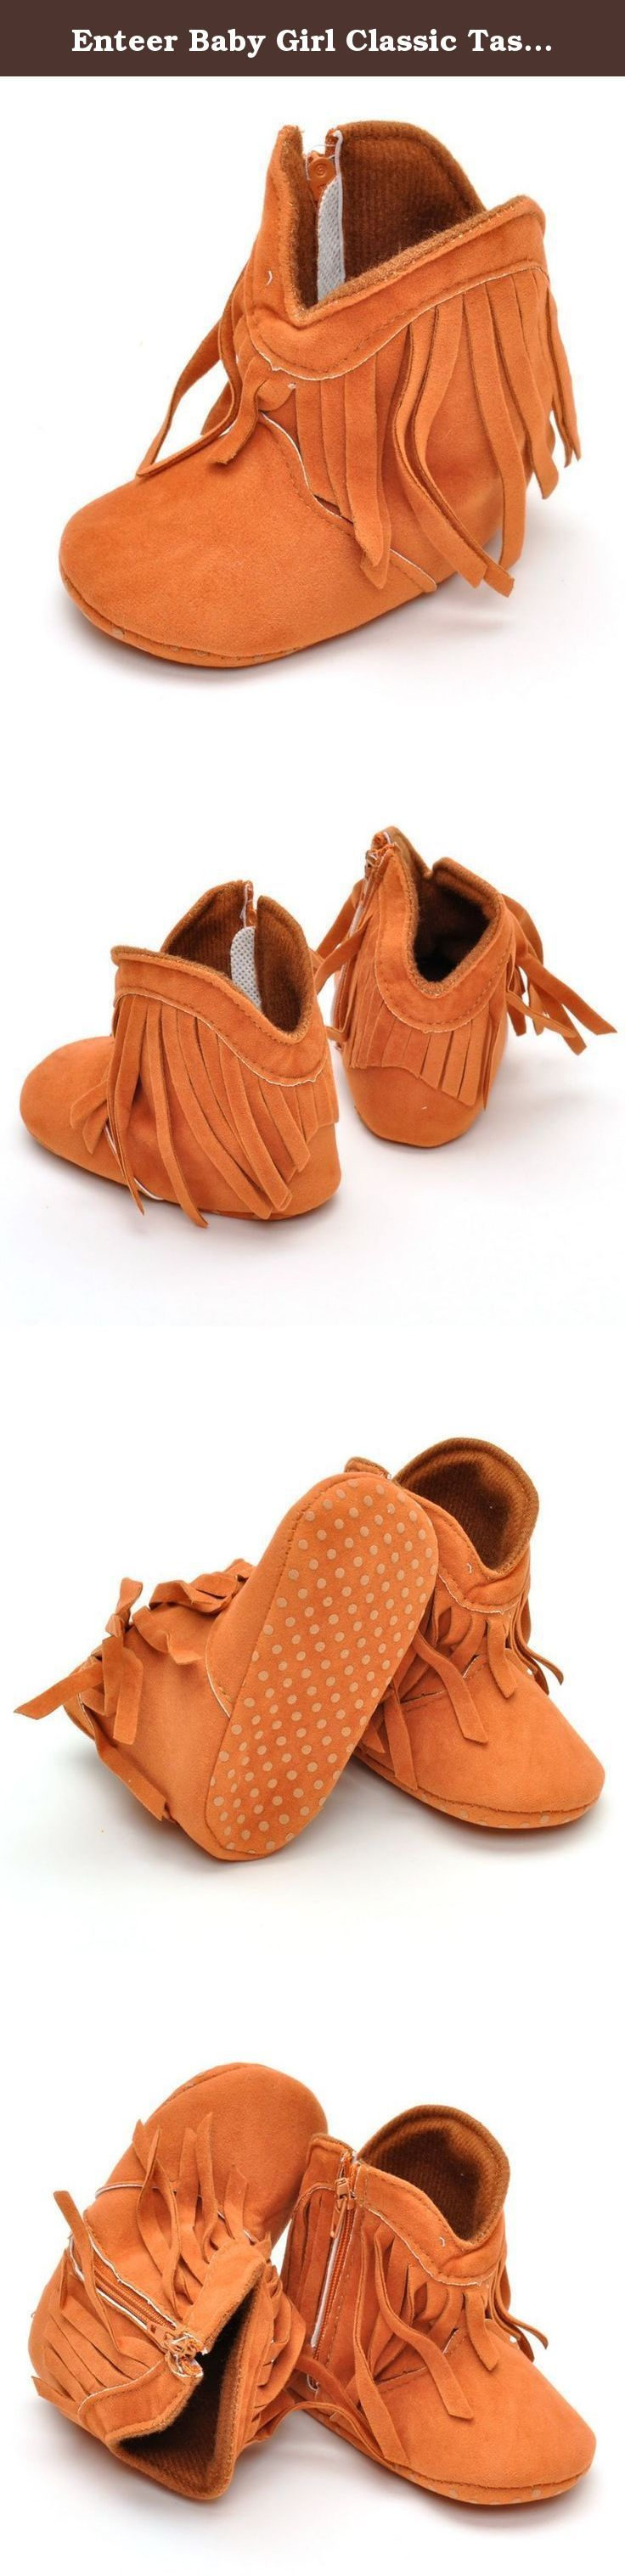 Enteer Baby Girl Classic Tassel Boots (13-18 Months, orange). Enteer baby Cowboy Tassel Boots are perfect for your little Cowboy or Cowgirl. Warm and stylish, these soft soled booties complete the Western look for any Cowboy or Darling Diva. Made from a cotton blend for warm, yet breathable comfort these boots offer a zip closure for easy on and off. Item Type: First Walkers Size: Fit For 0-18 Months Baby Season: Autumn Gender: Baby Girls Specifications: Size S: Recommended Age: 0-6…